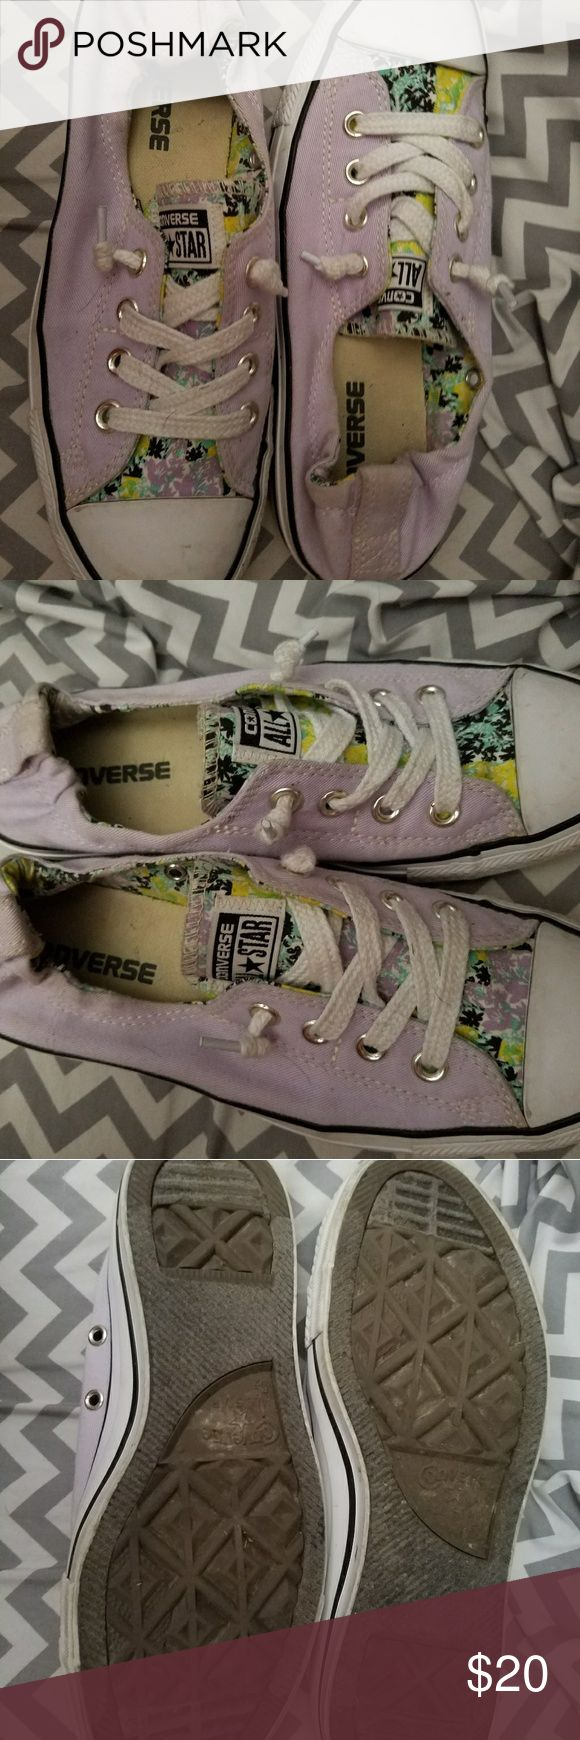 Converse slip on shoes Size 7.5 lavender slip on converse. Loved these shoes but they were slightly big on me. Converse Shoes Sneakers